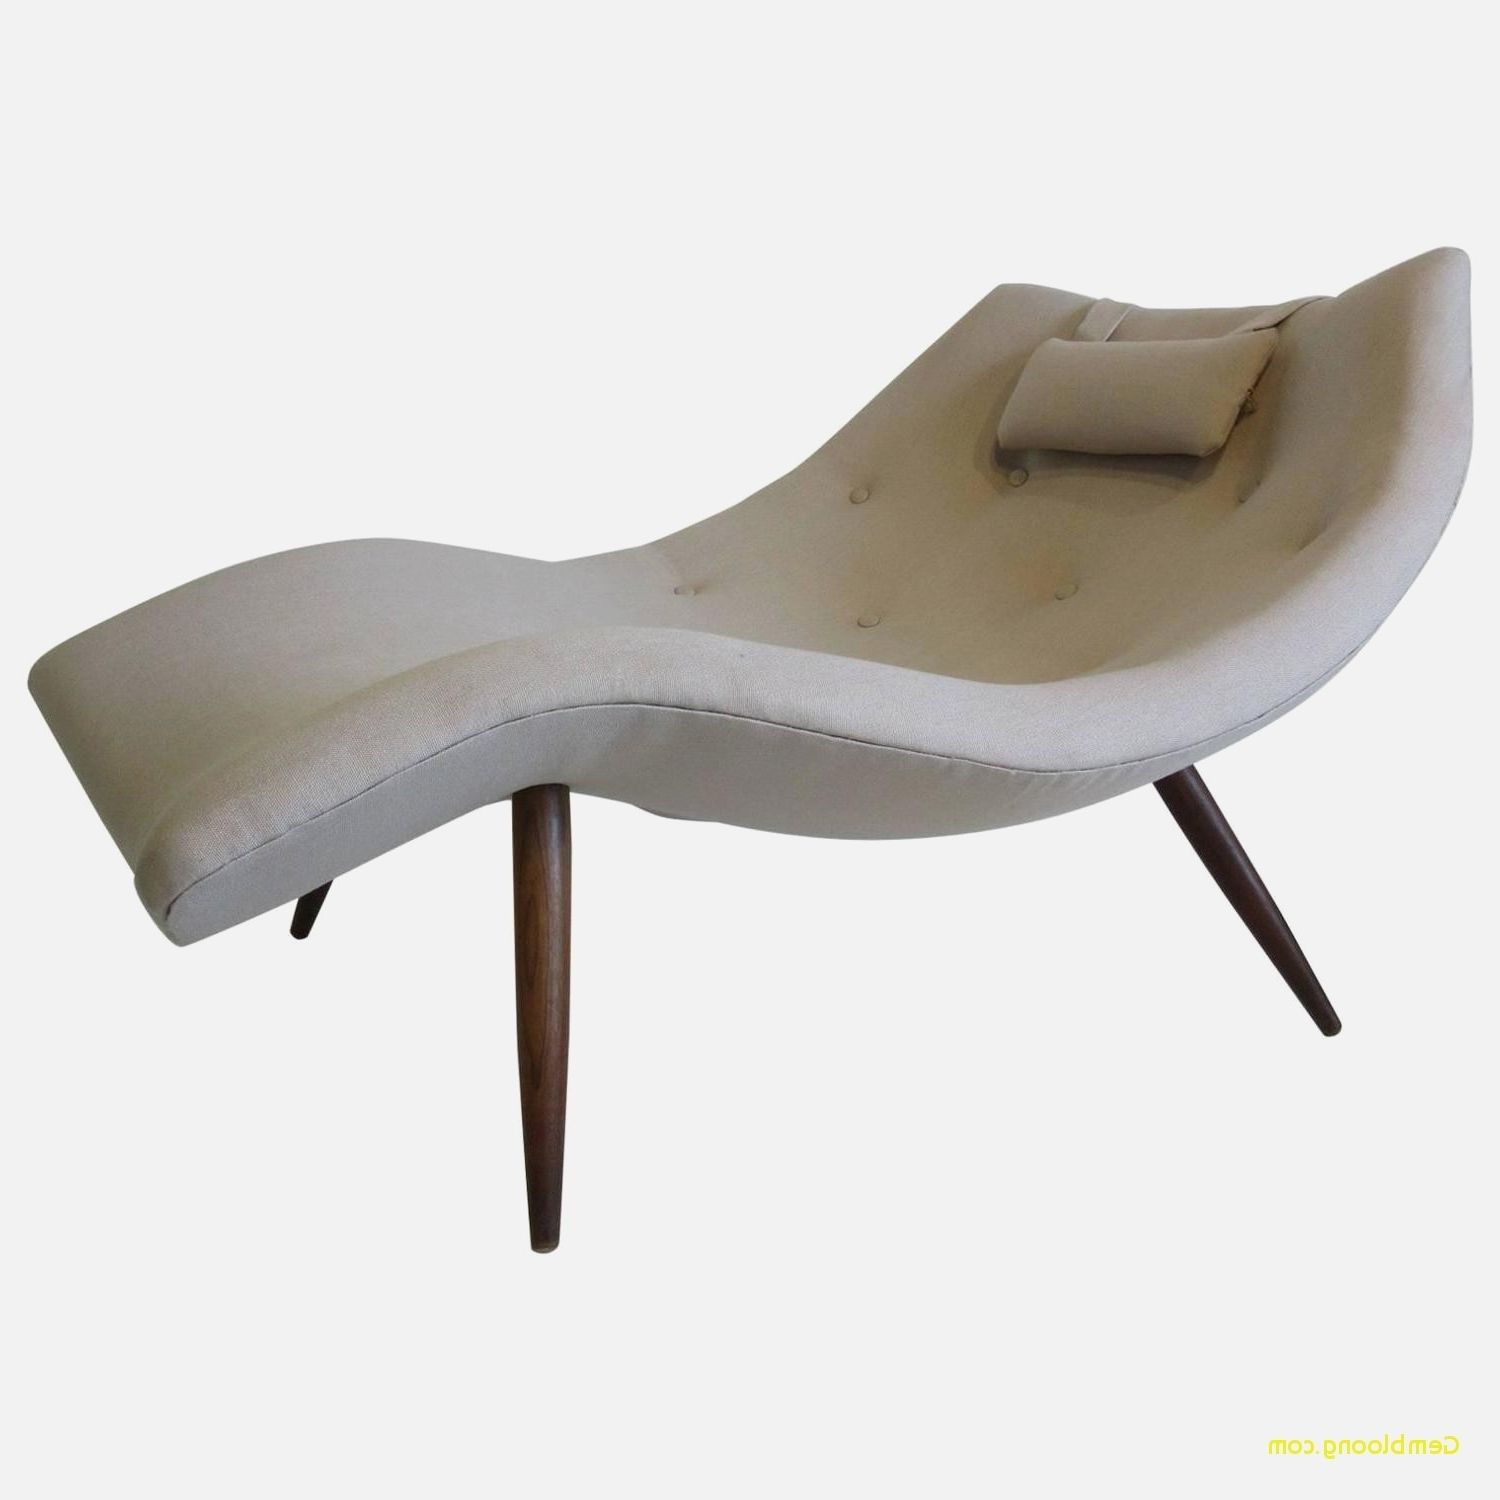 2017 Curved Chaise Lounge Chair Unique Curved Chaise Lounge Chair Pertaining To Curved Chaise Lounges (View 1 of 15)